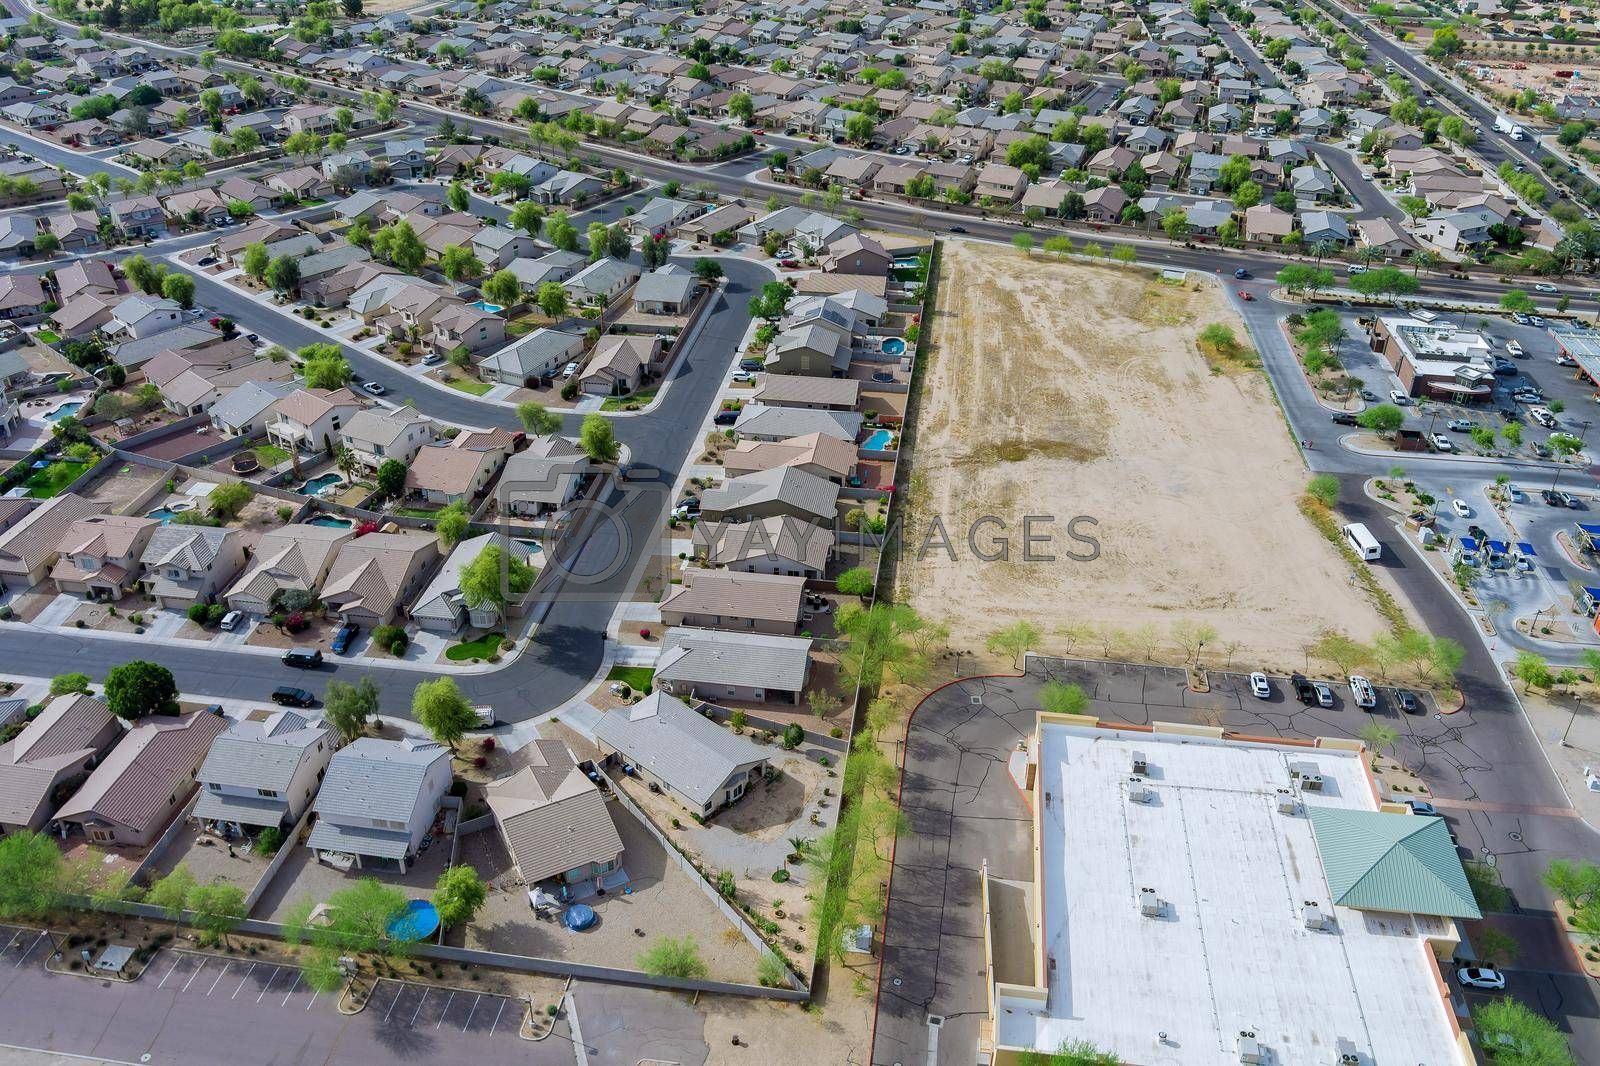 Aerial view of residential quarters at beautiful town urban landscape the Phoenix Arizona USA